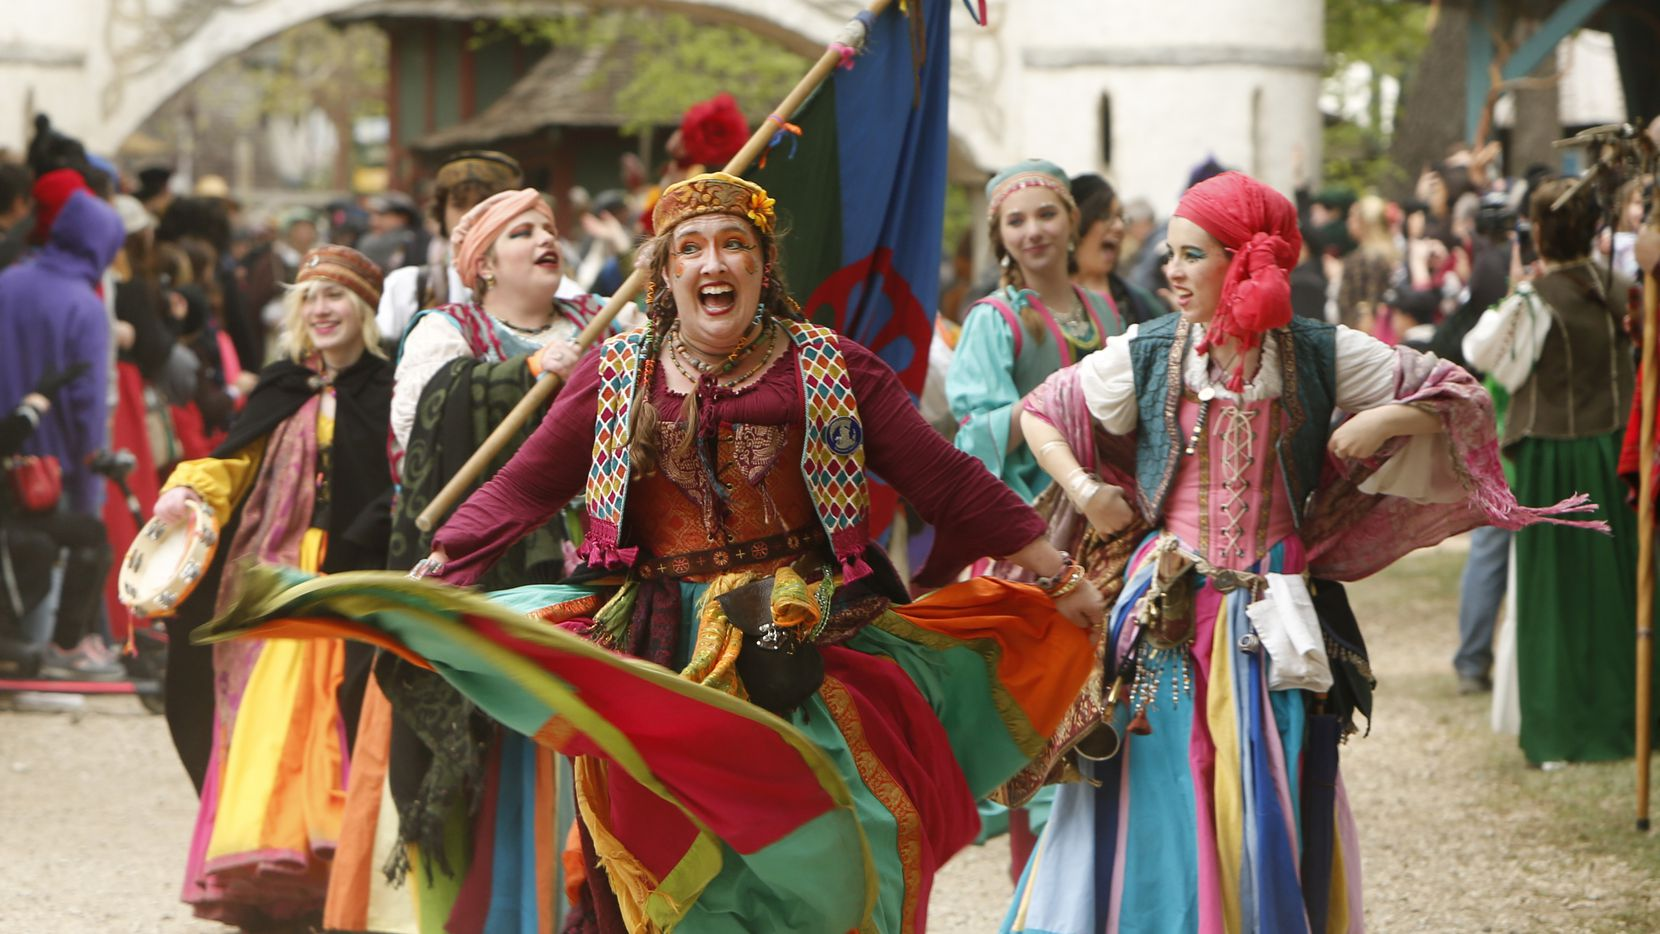 Scarborough Renaissance Festival includes a parade through the festival grounds each day at 1 p.m., featuring live music and many of the village performers.